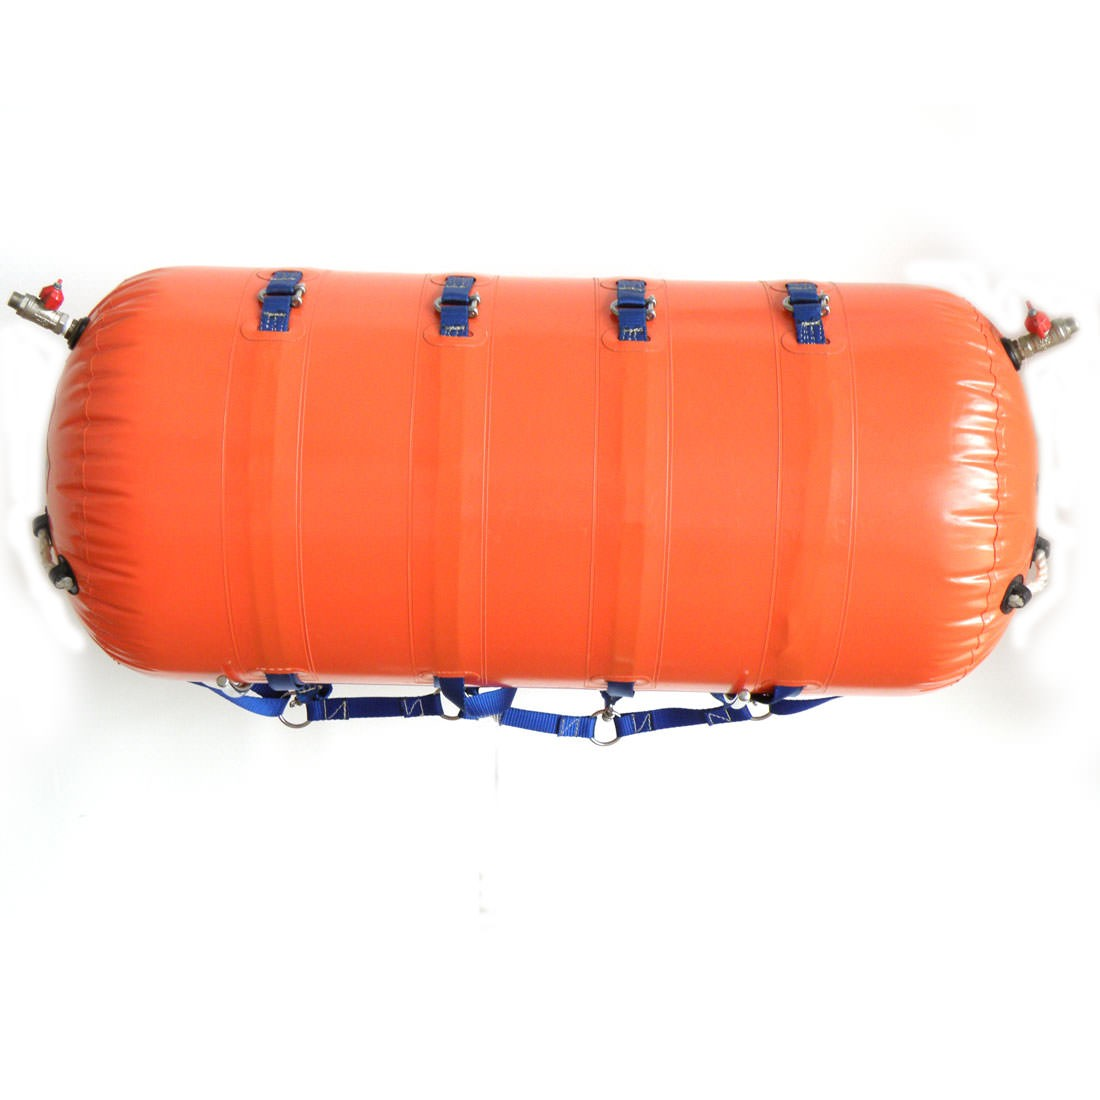 Seaflex Inflatable Buoyancy Unit 2,204 lbs 1,000 kg Lift Capacity SEF-1TIBU-016